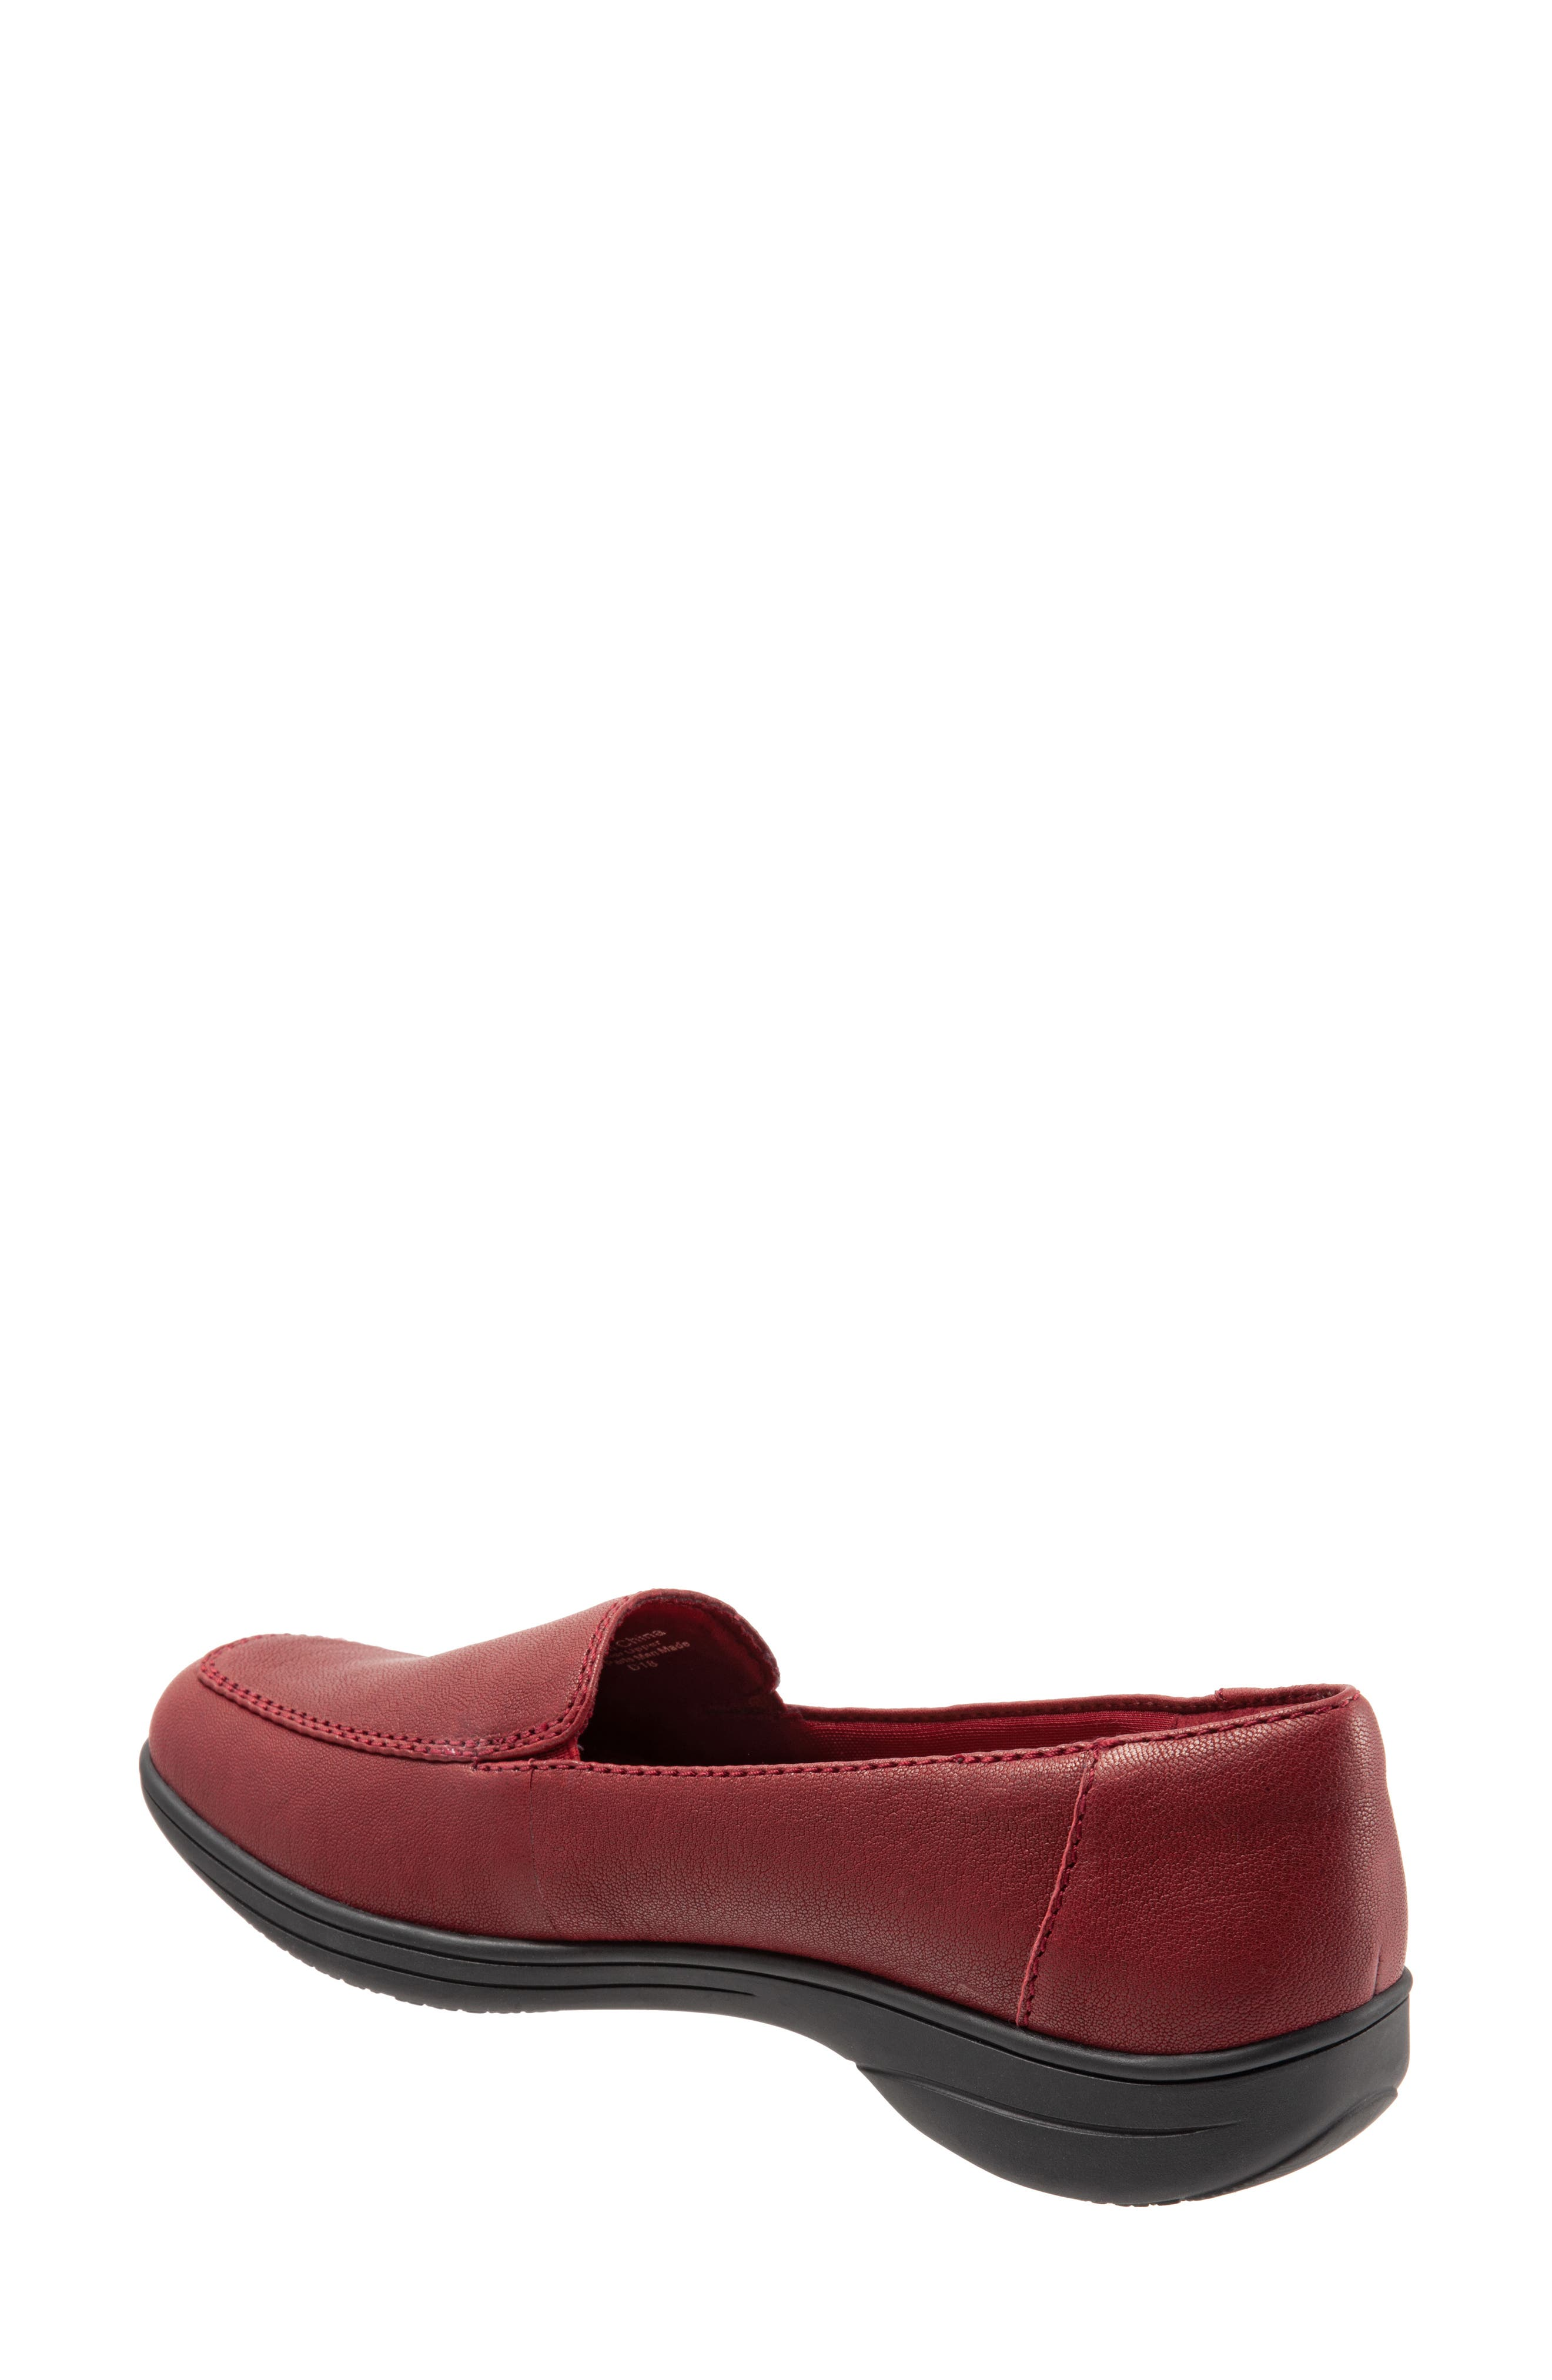 Jacob Loafer,                             Alternate thumbnail 2, color,                             DARK RED LEATHER